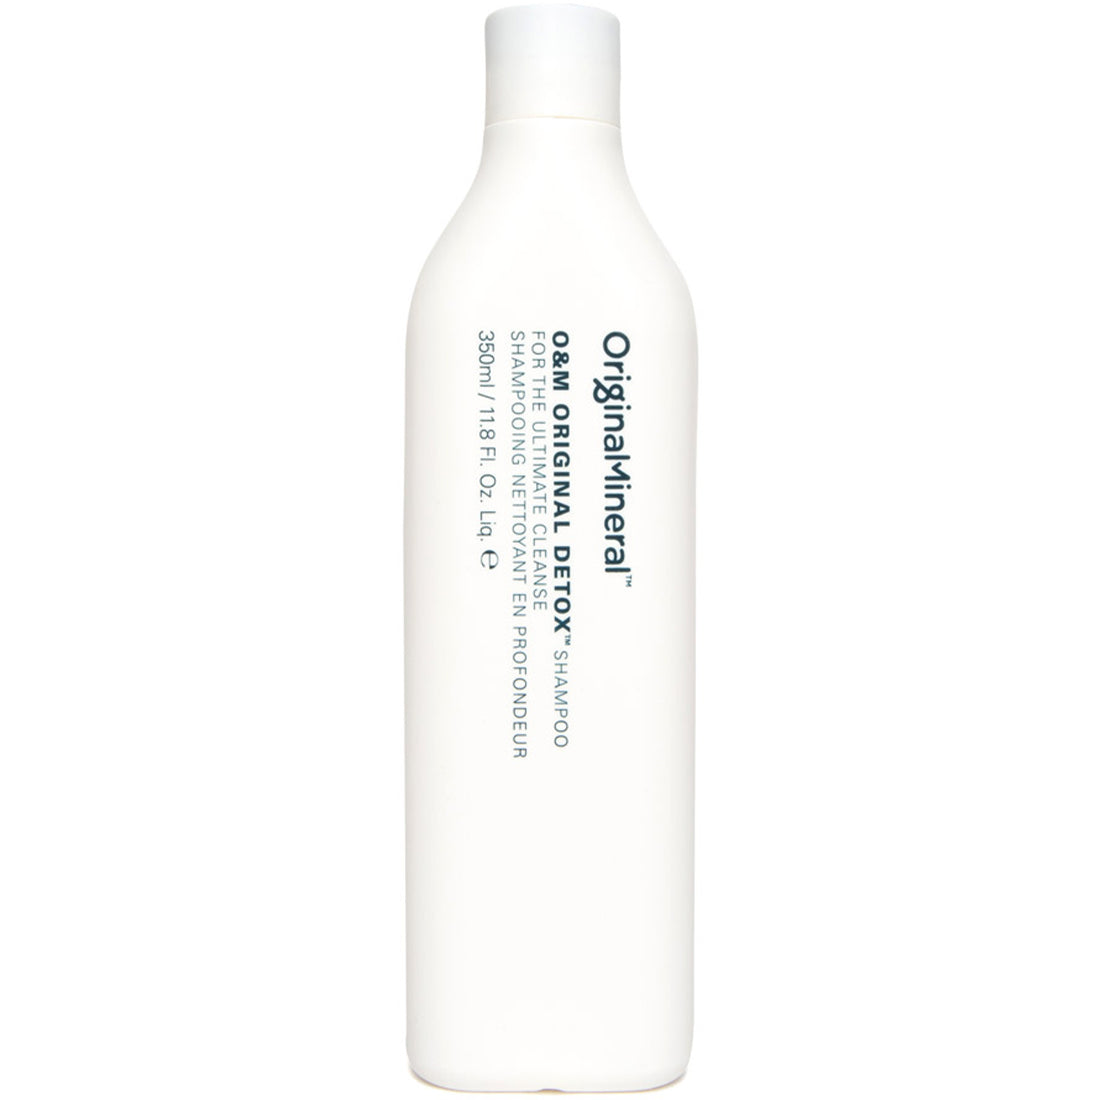 Original Detox Shampoo 350ml